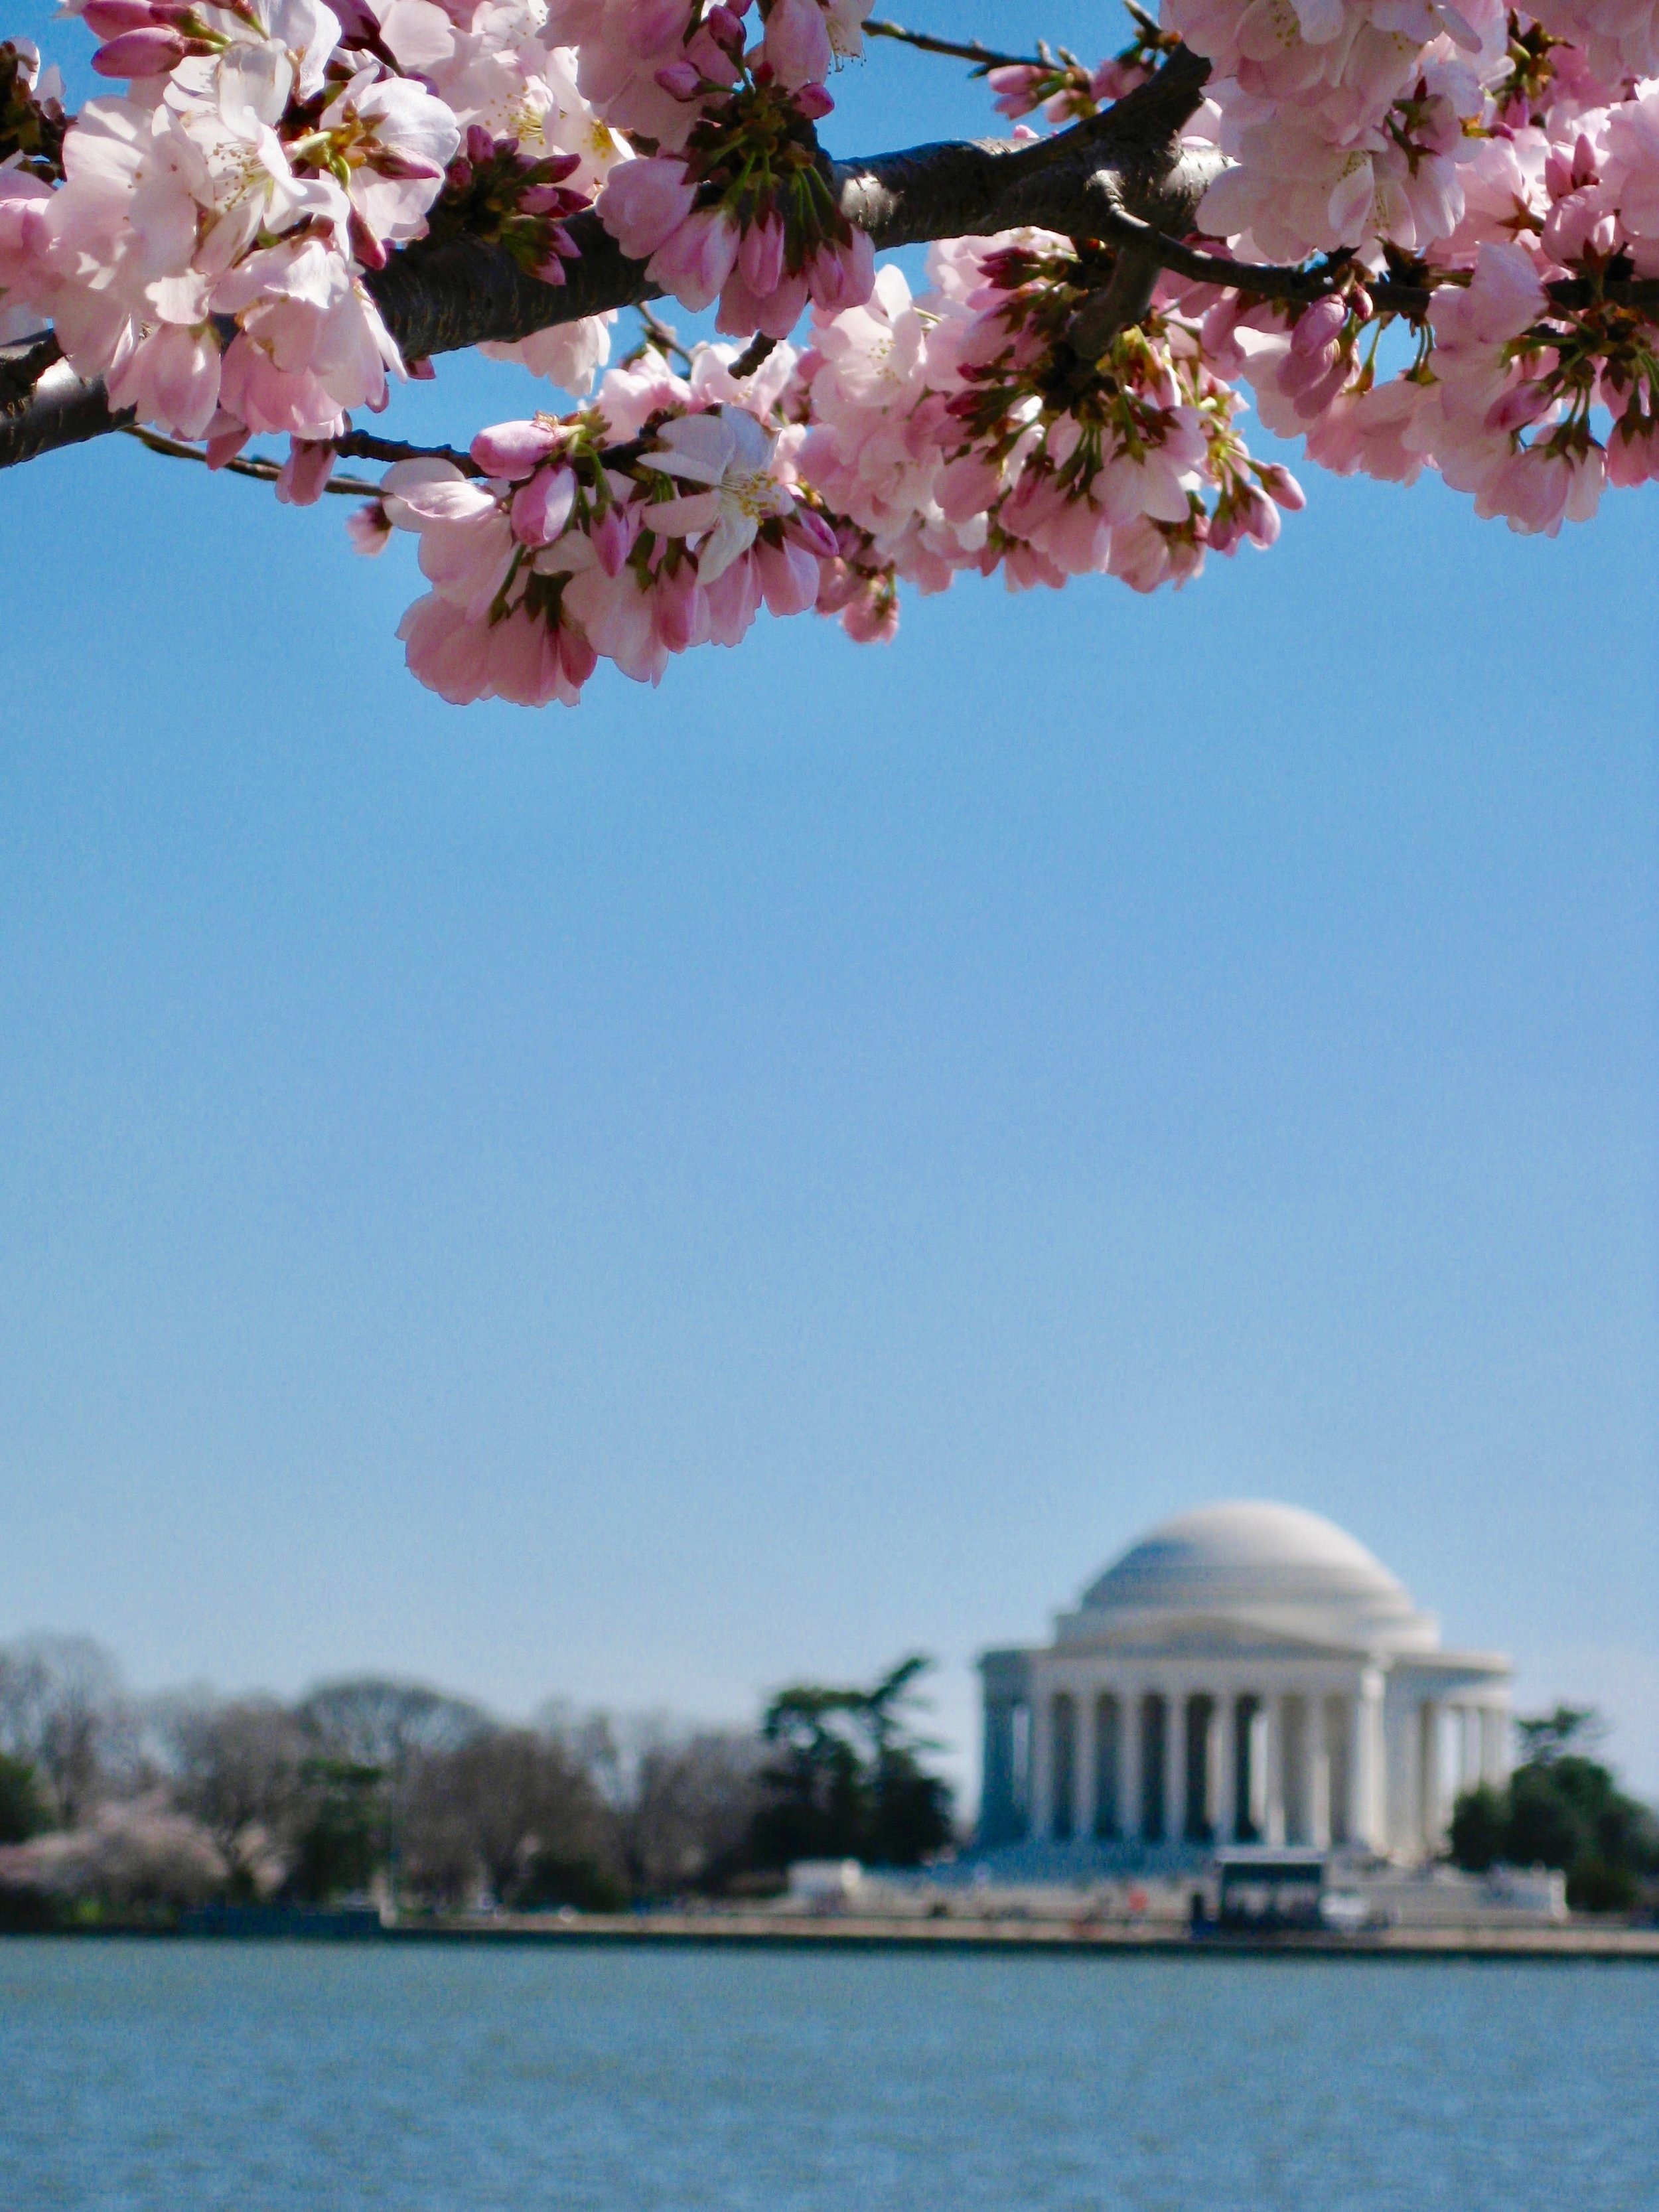 I love me some tidal basin during the Cherry Blossom Festival.